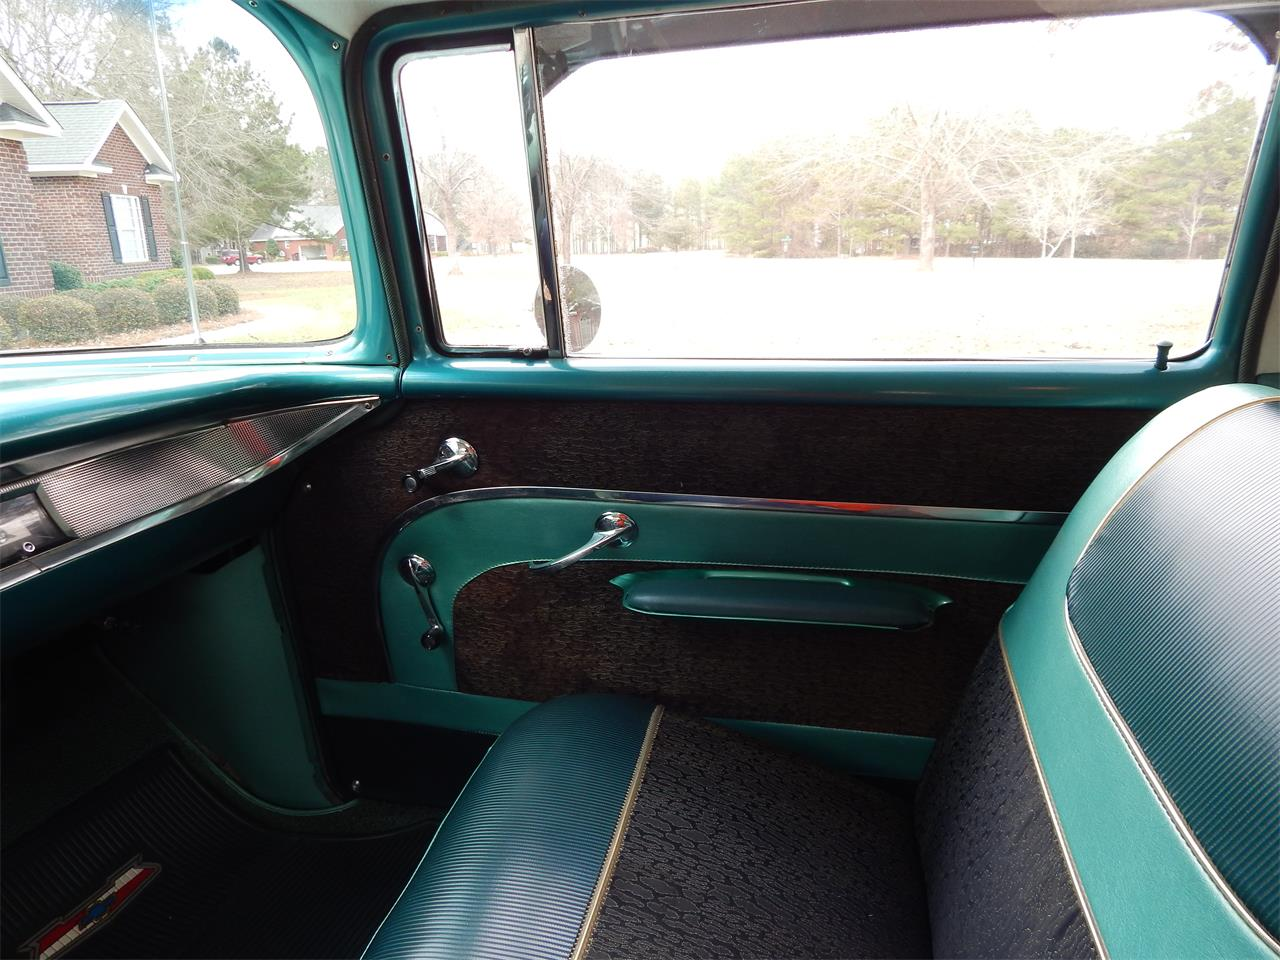 1957 Chevrolet Bel Air for sale in Online, Online Auction – photo 16